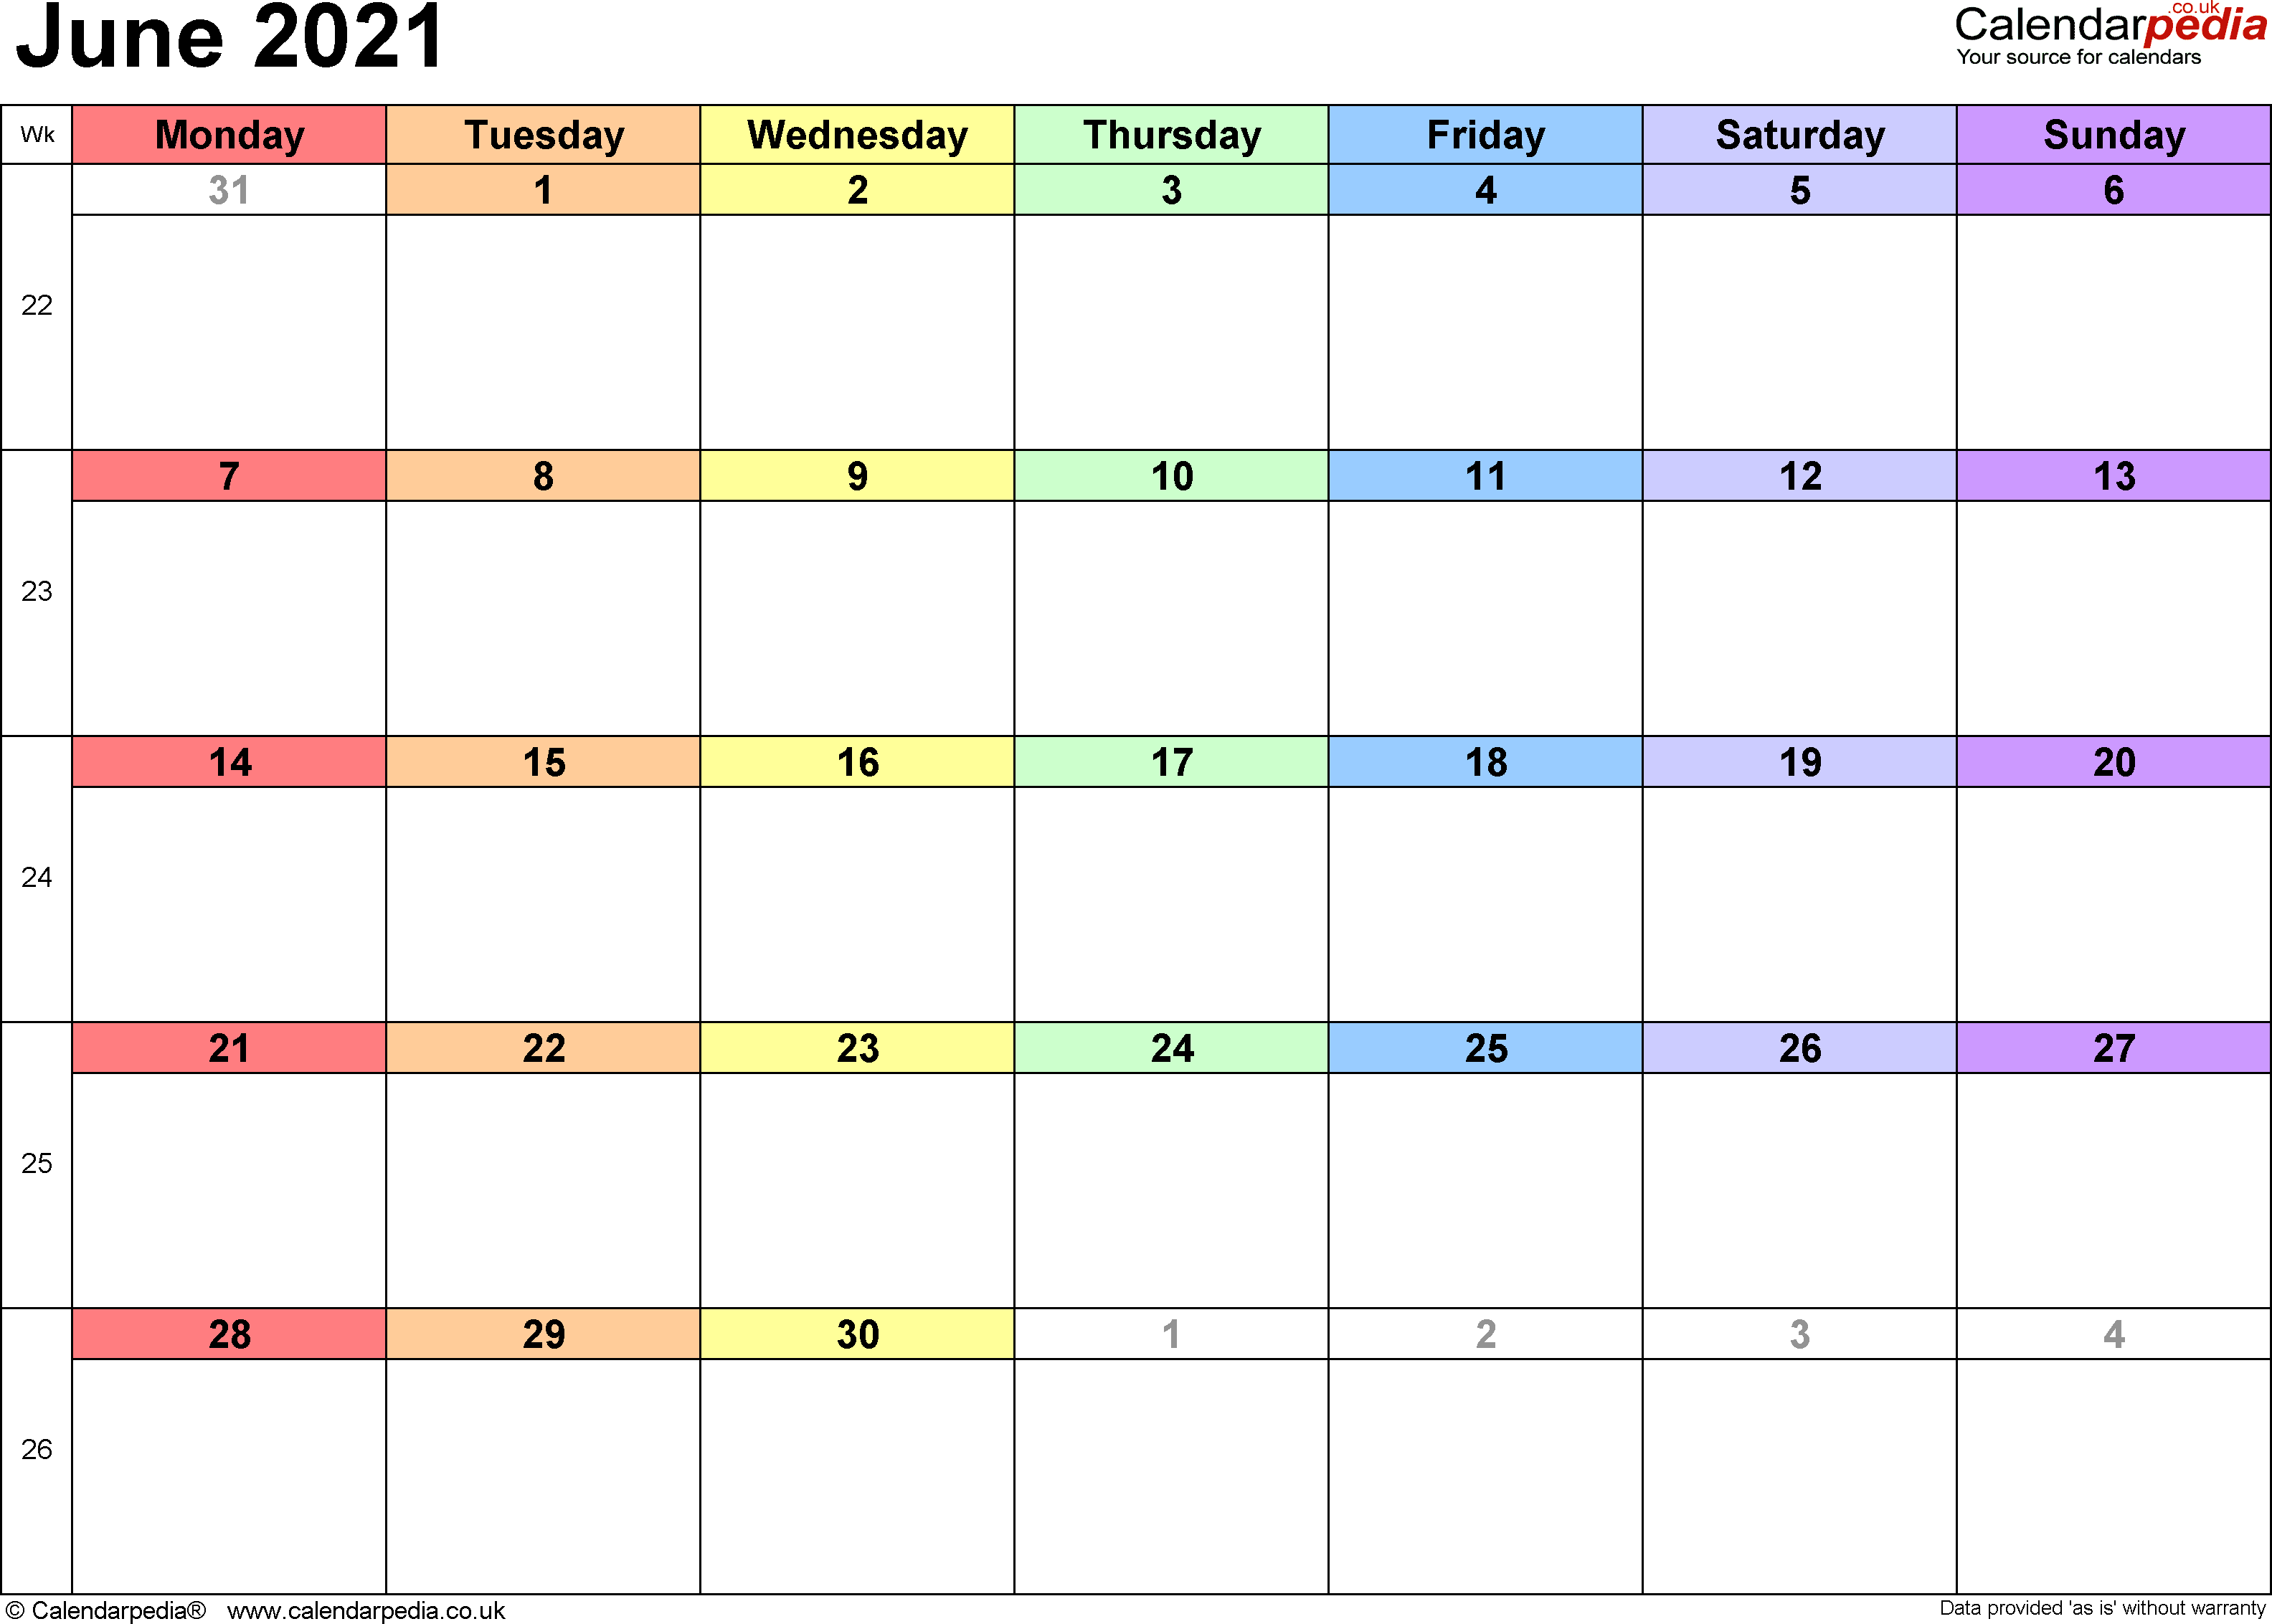 Calendar June 2021, landscape orientation, 1 page, with UK bank holidays and week numbers